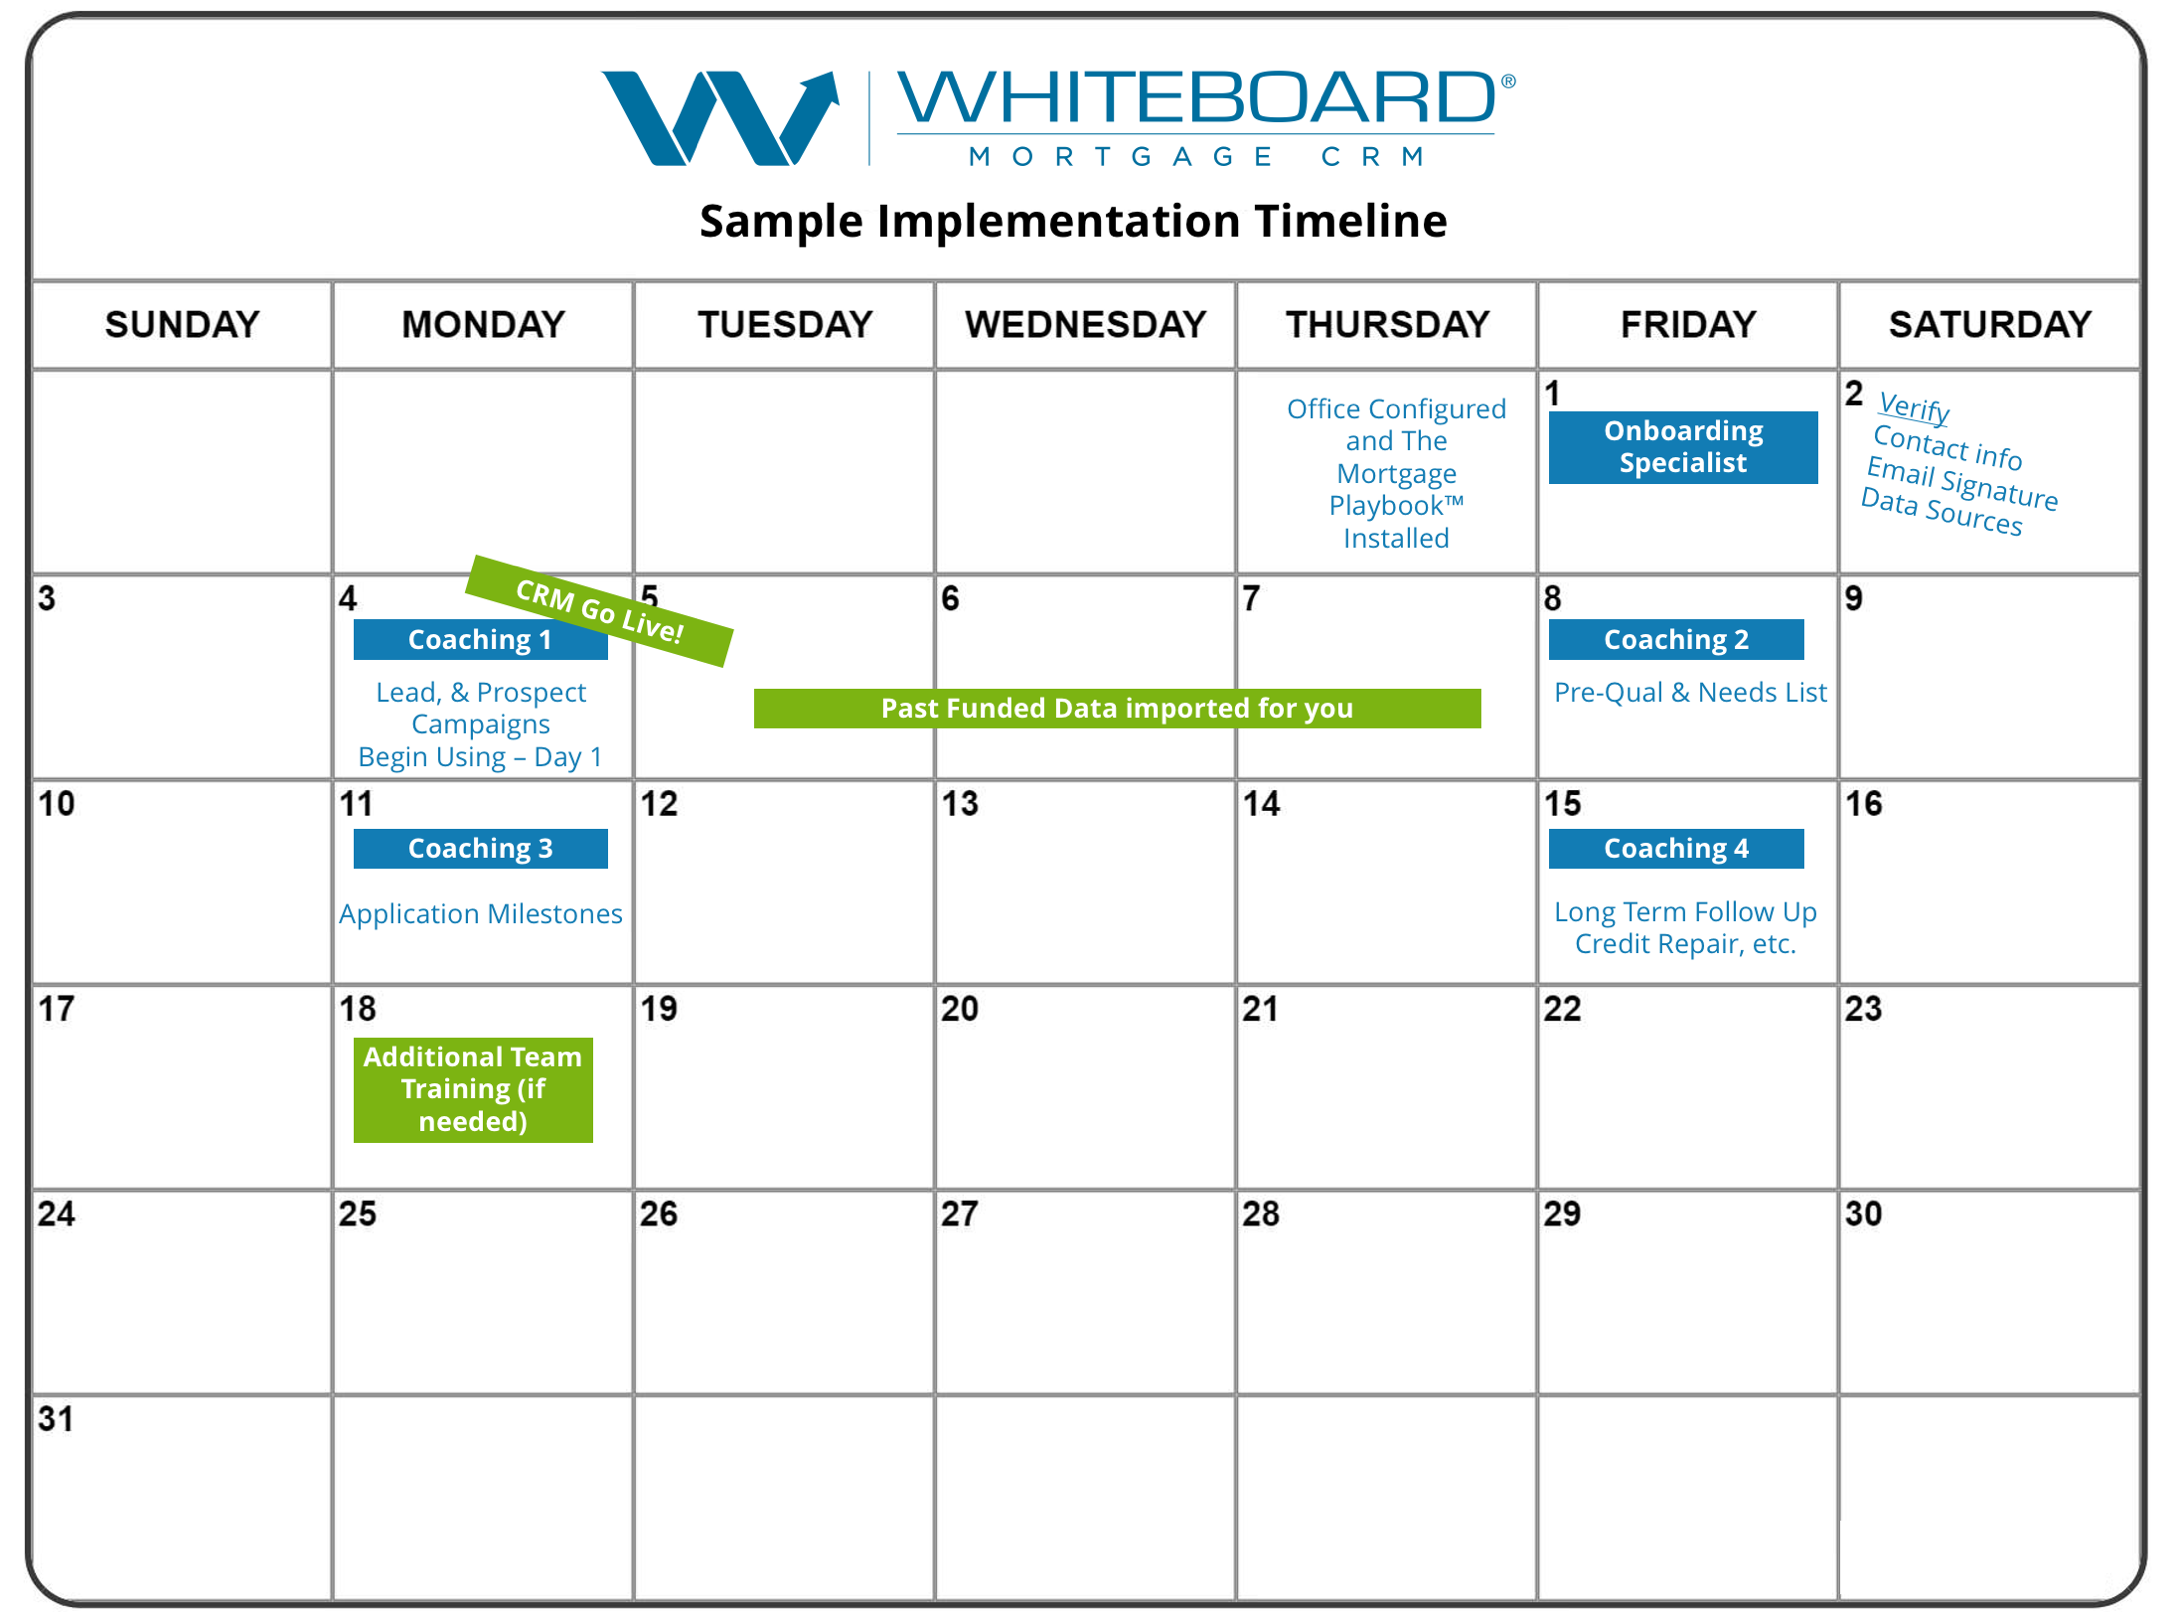 Whiteboard_Mortgage_CRM_Implementation